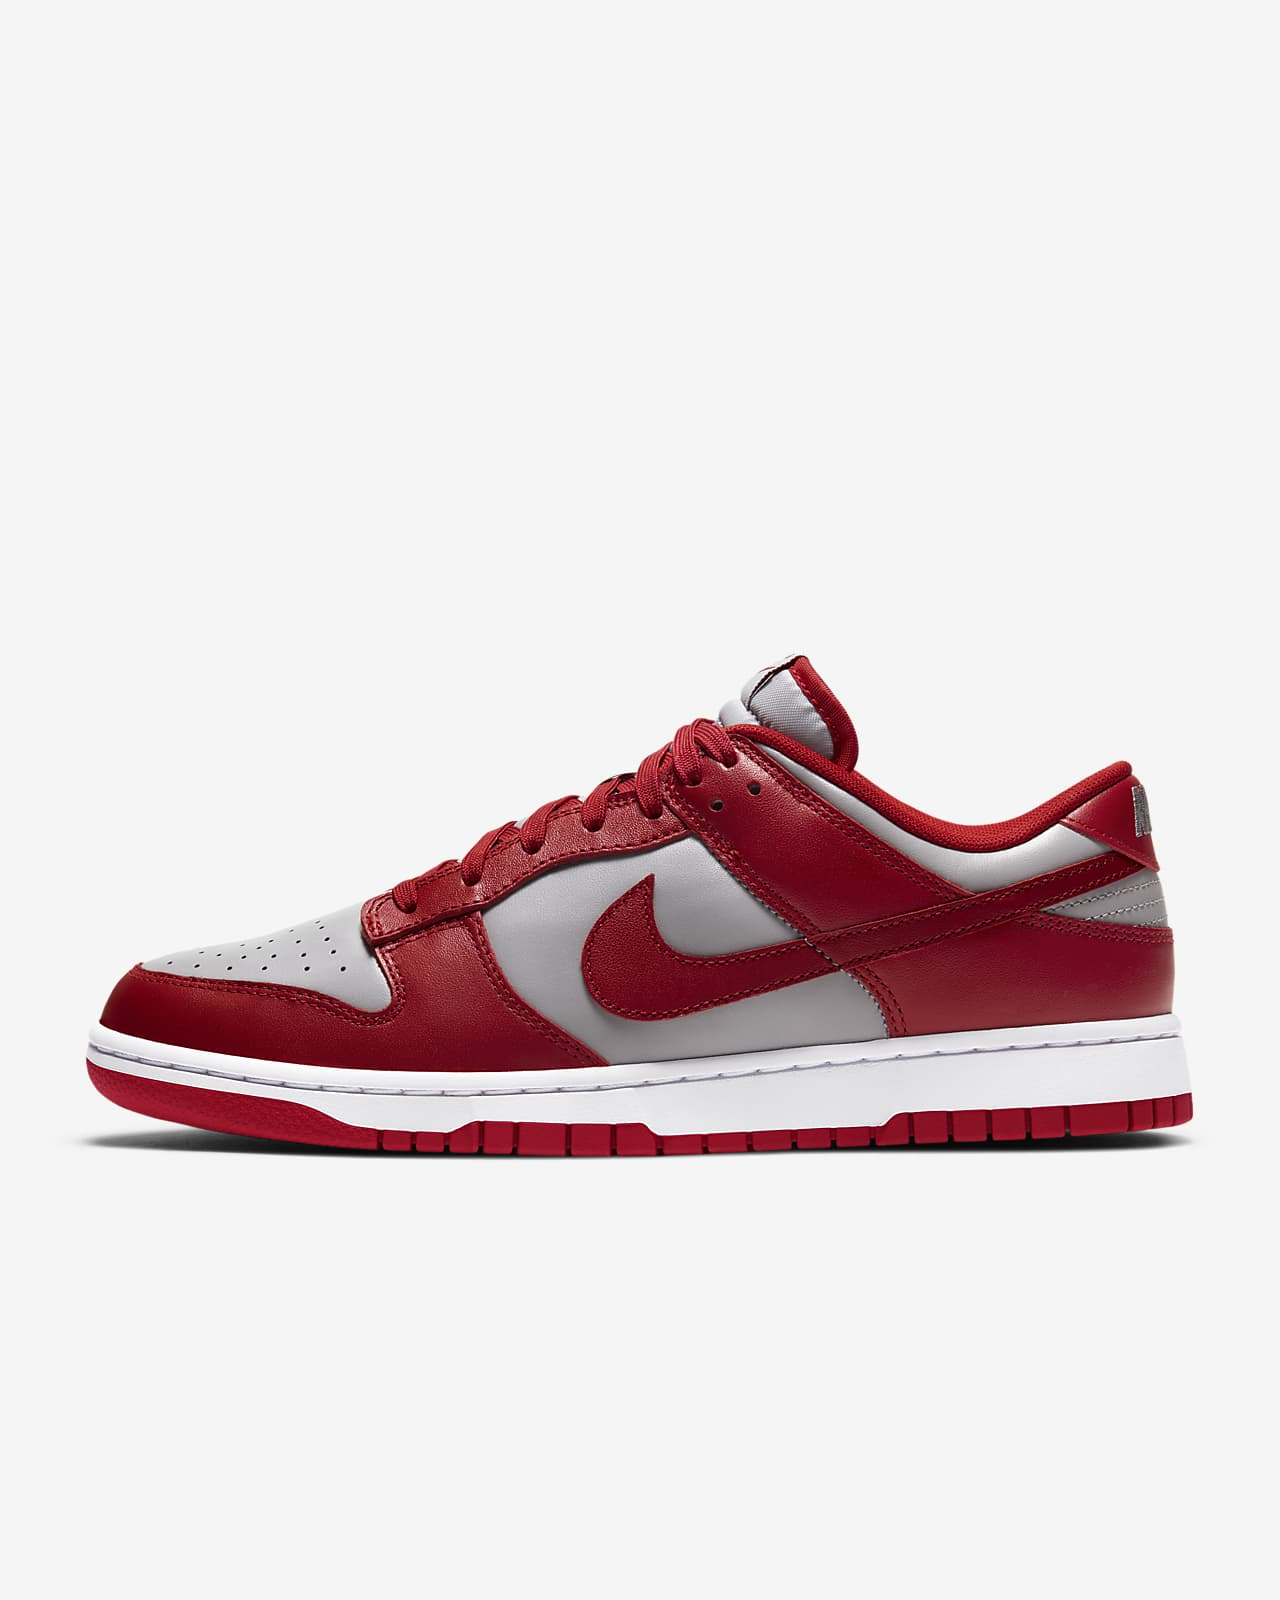 Chaussure Nike Dunk Low Retro pour Homme